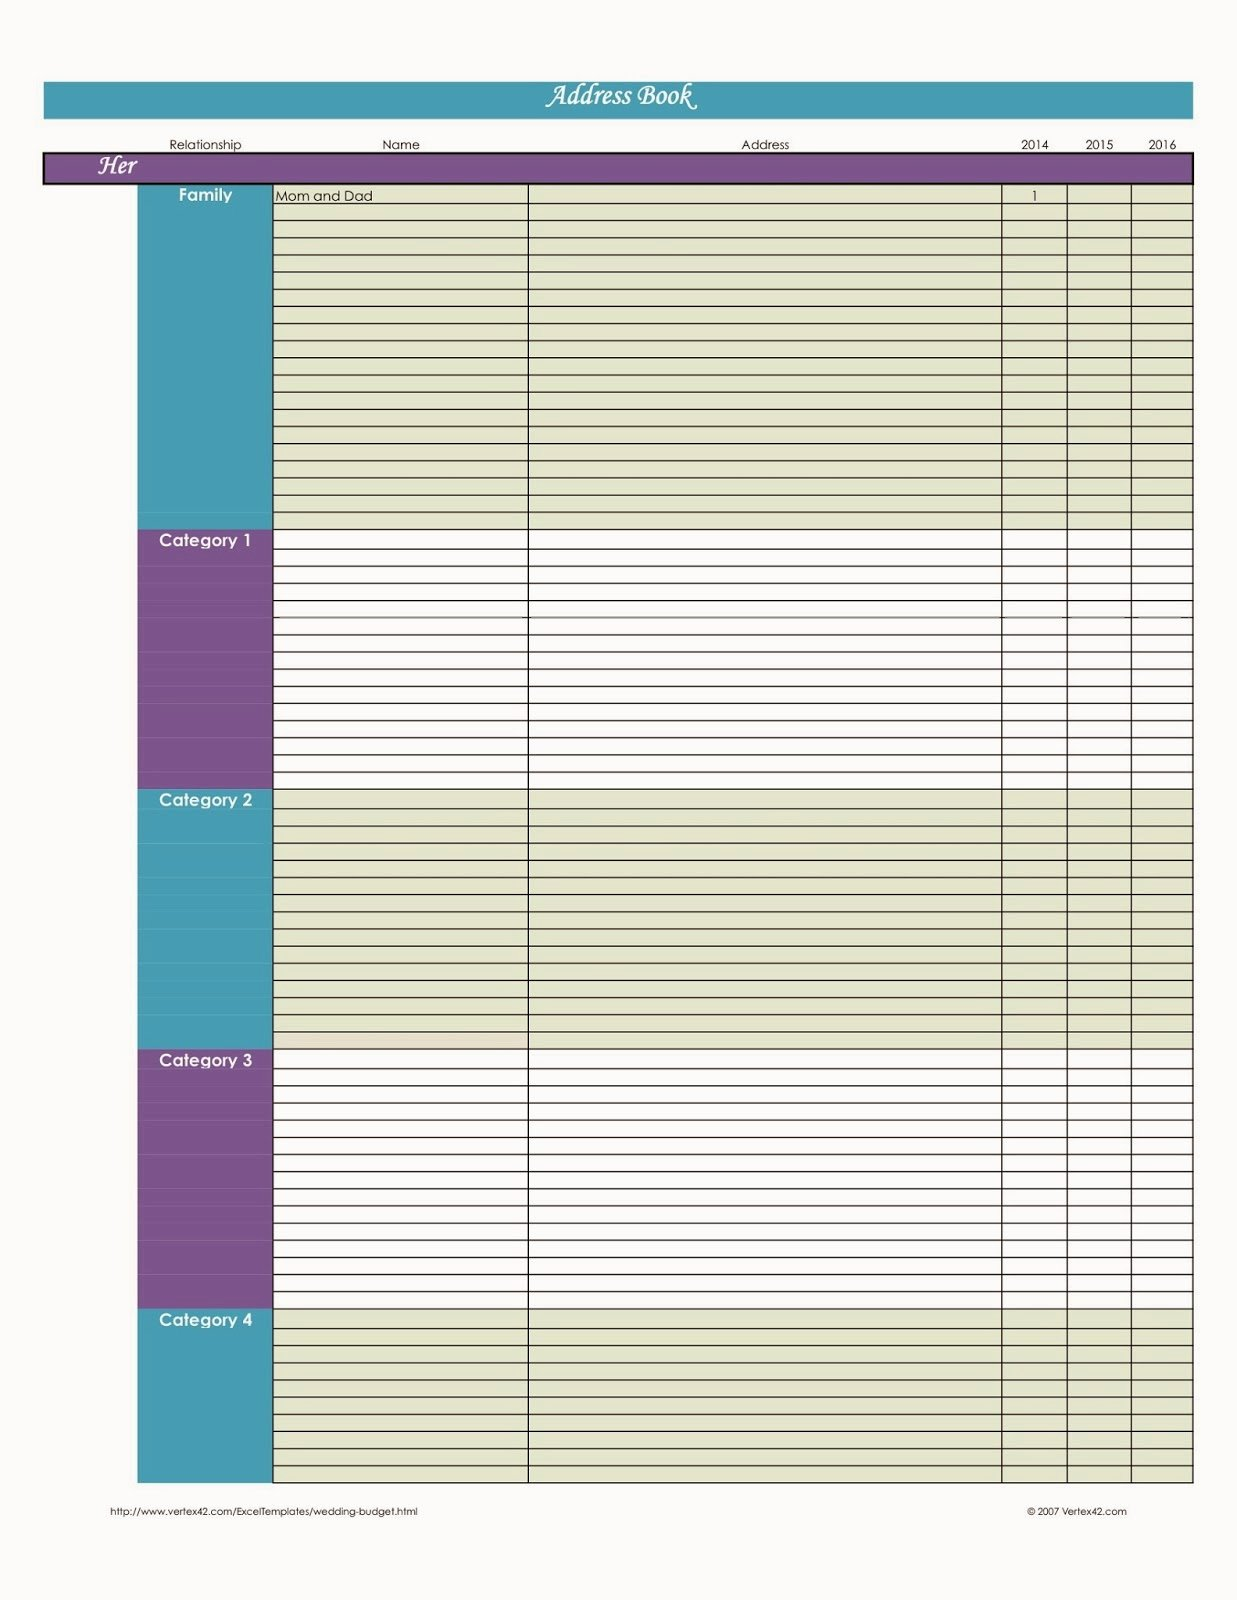 Excel Address Book Template Lovely Laura S Plans Easy Excel Address Book Template